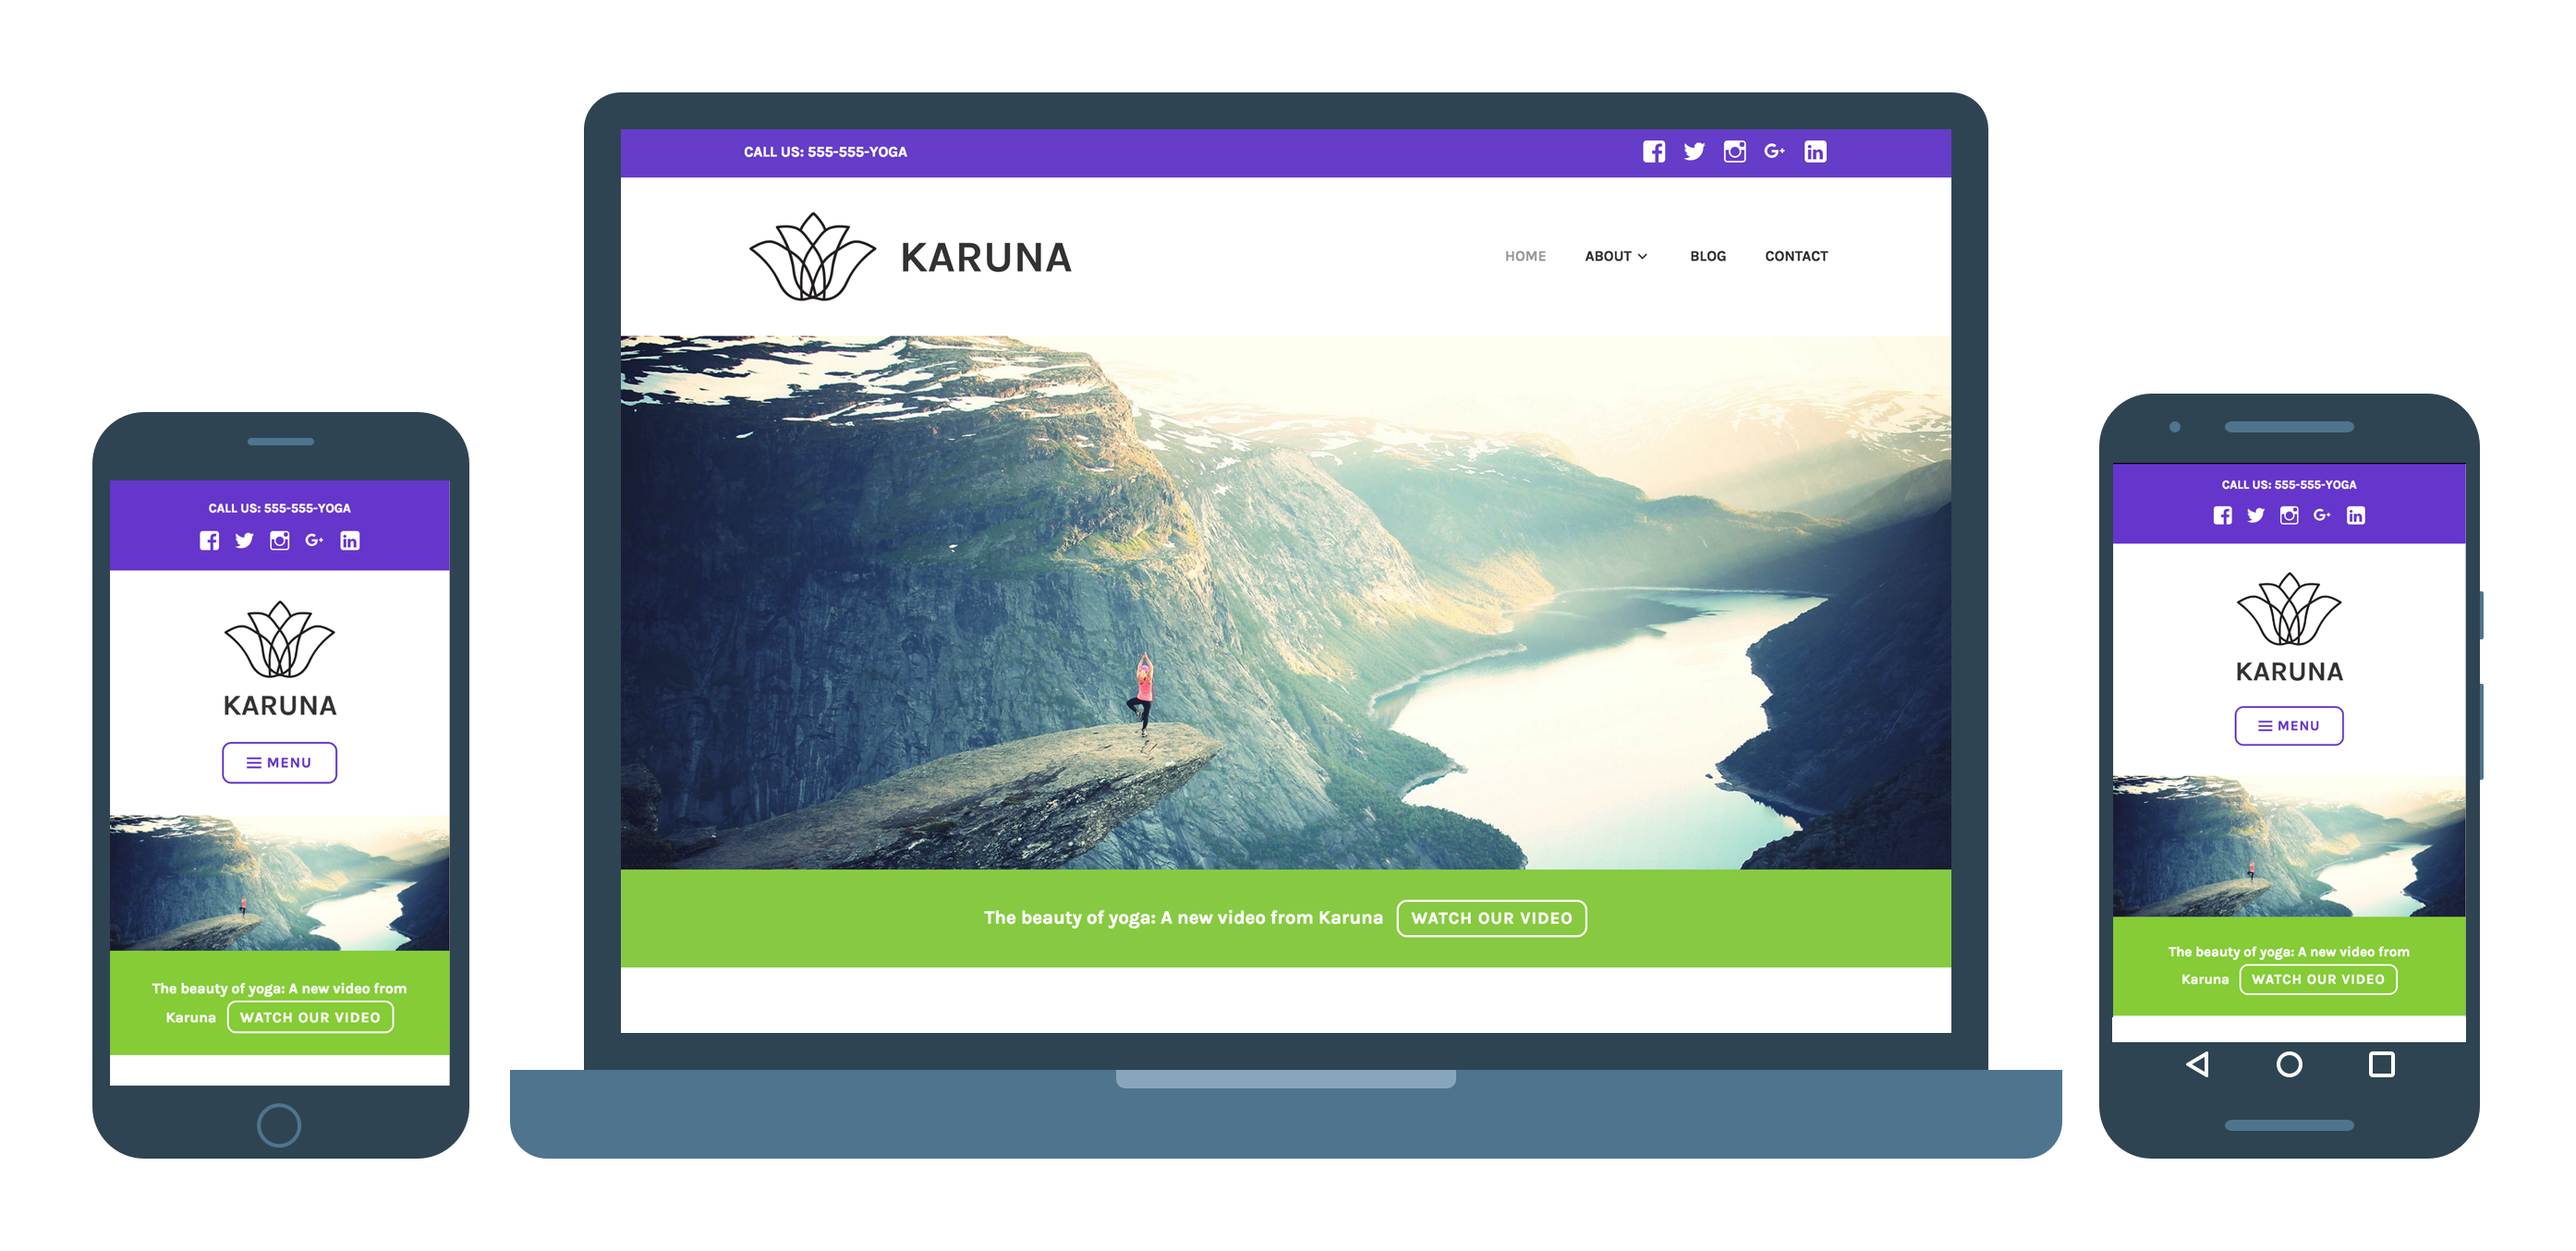 New Theme: Karuna